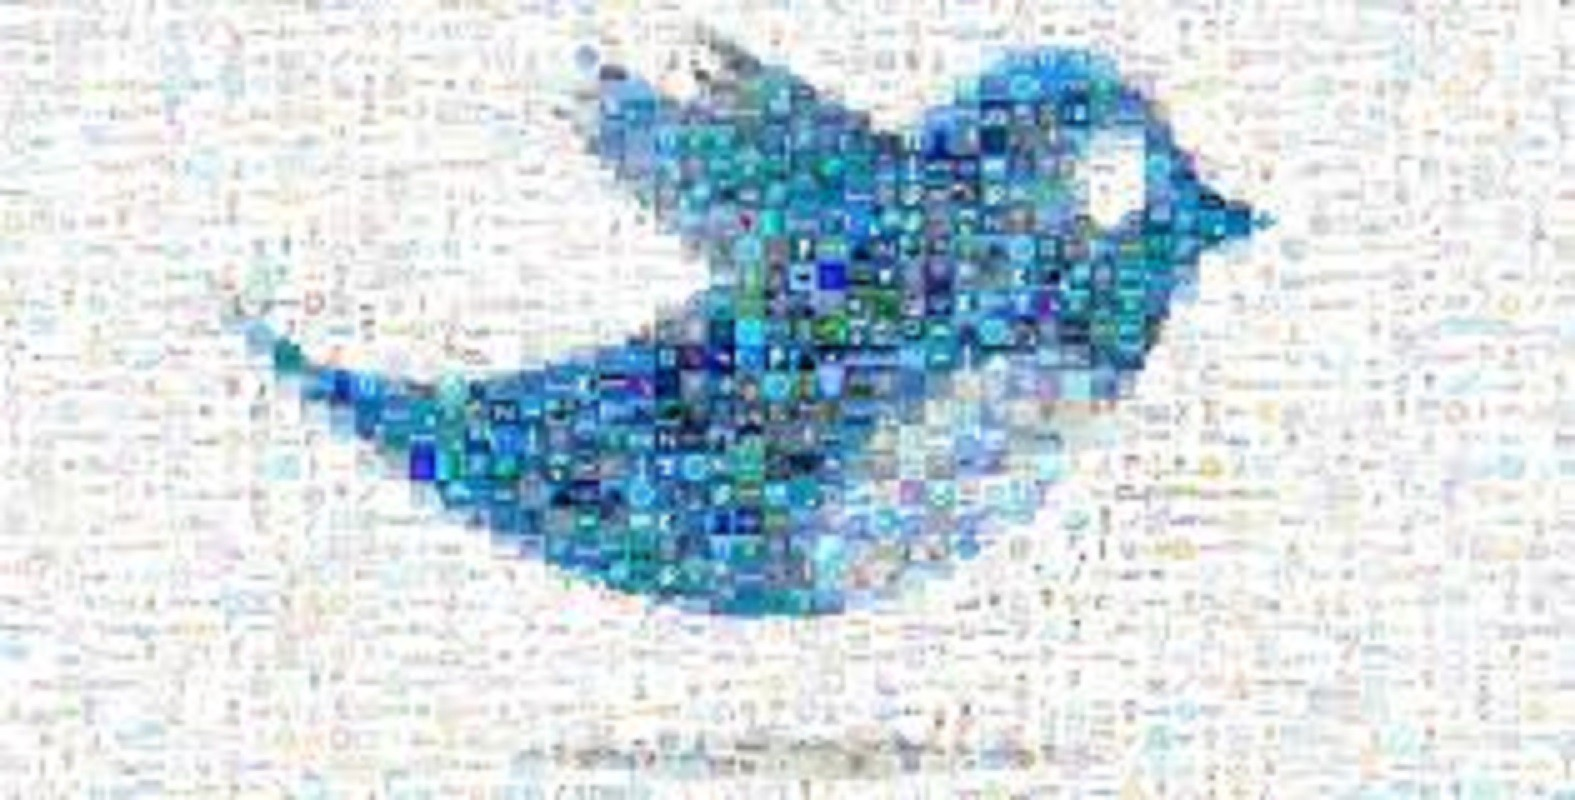 How to build your own Twitter sentiment analysis system in